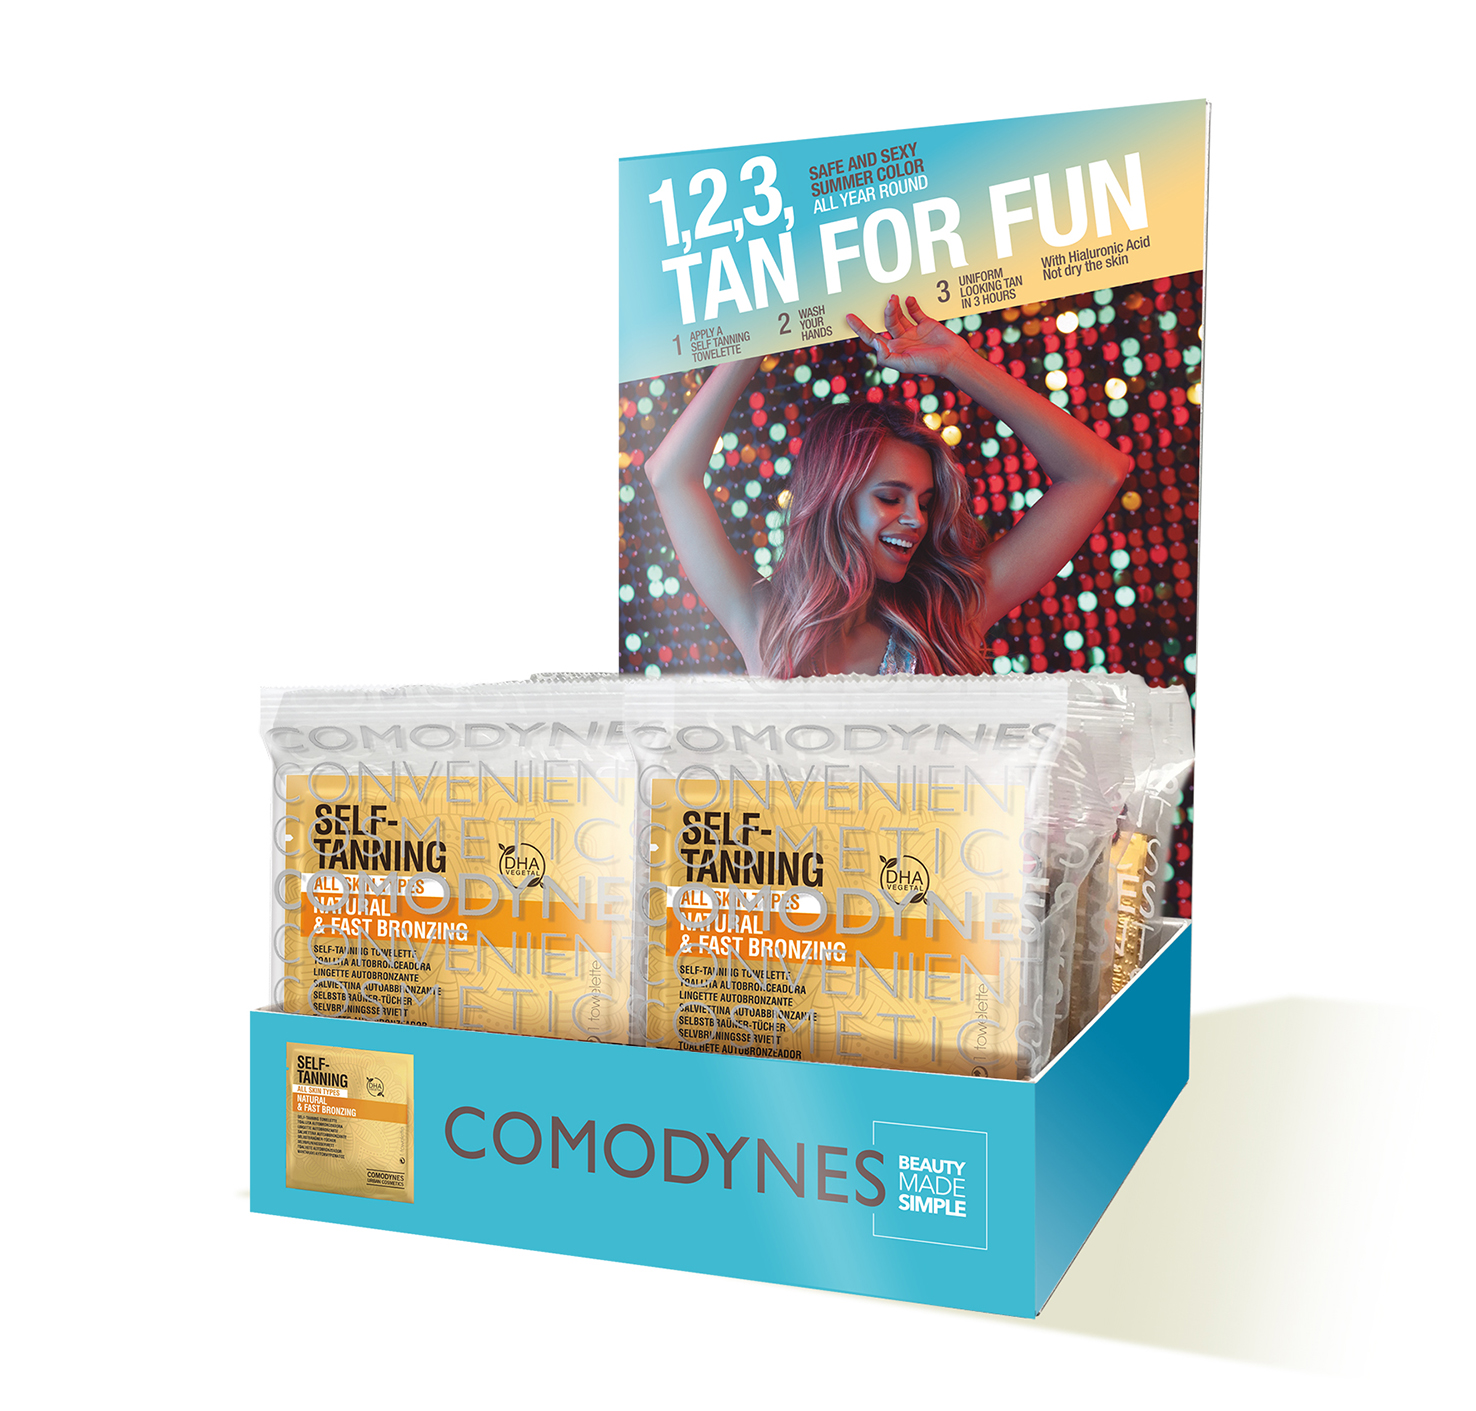 """Tan for Fun"" – Comodynes Campaign PLV"